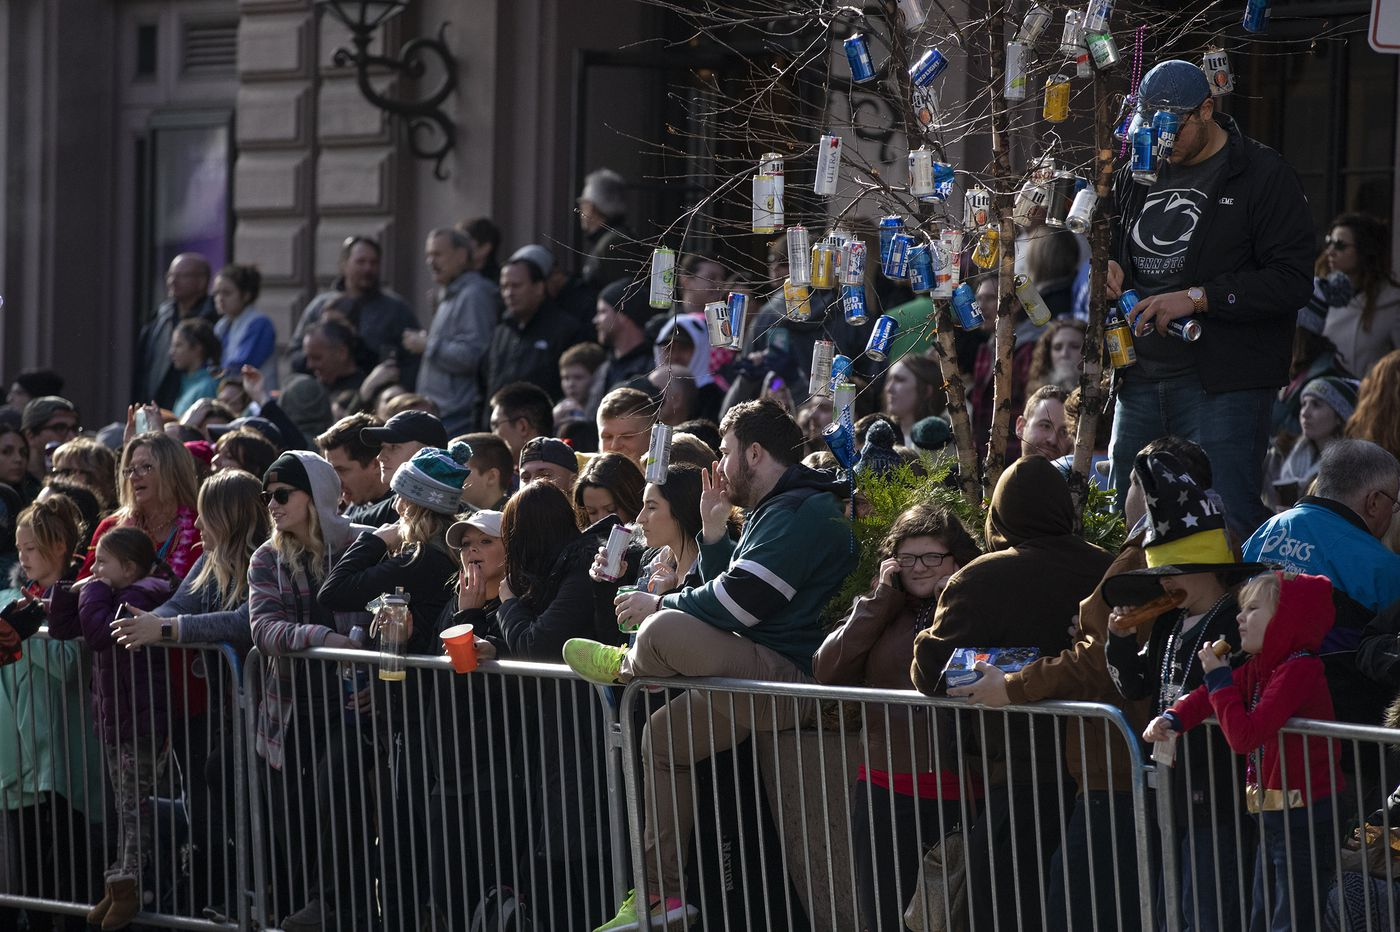 History shows canceling the New Year's Day parade will not stop the Mummers from marching